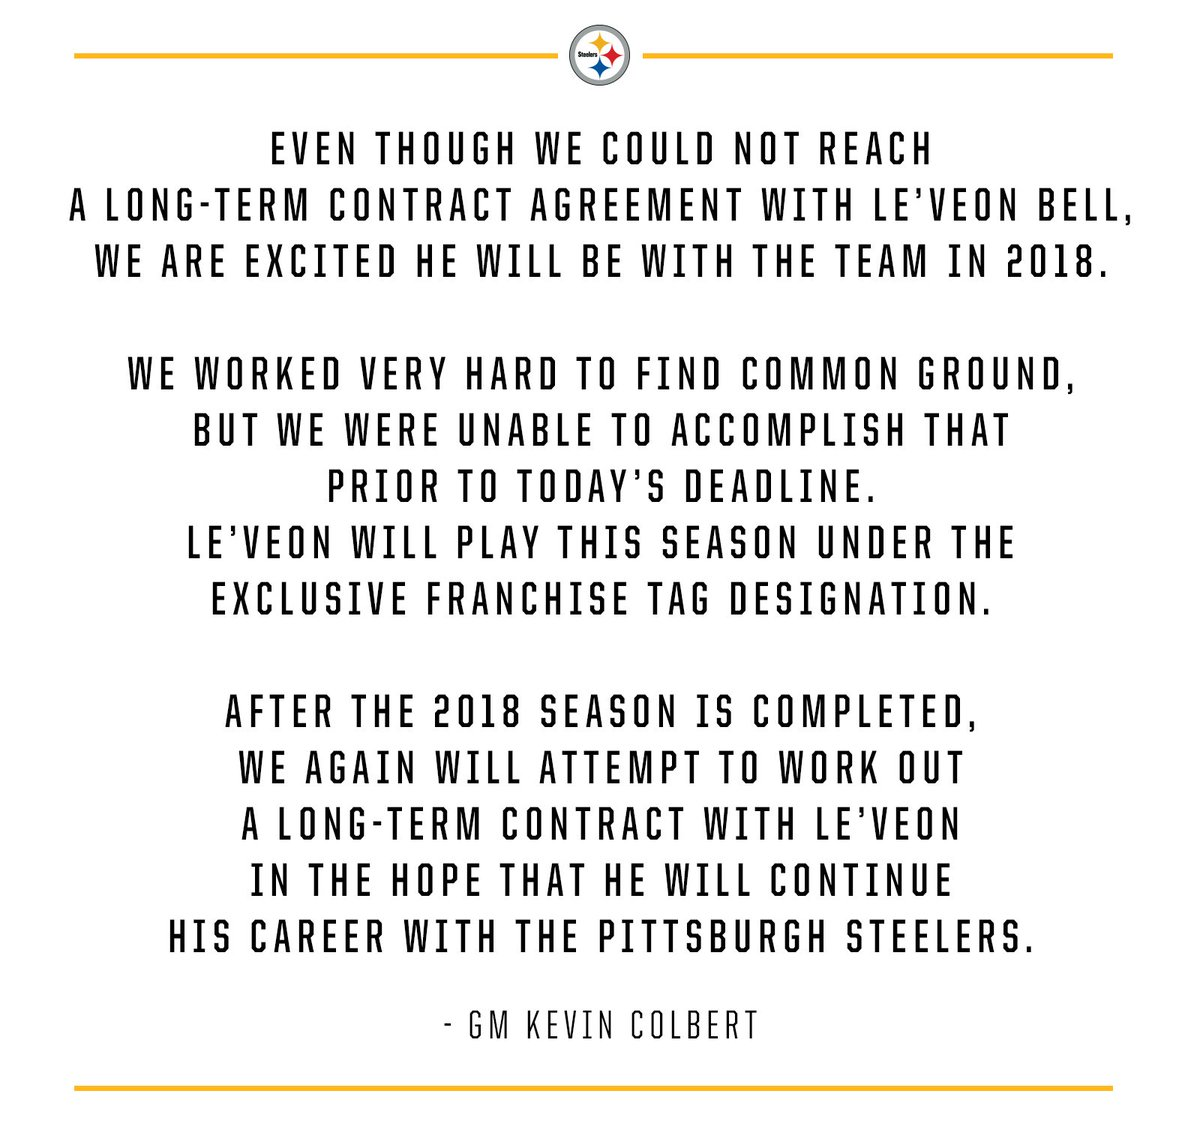 Pittsburgh Steelers On Twitter Statement From Gm Kevin Colbert On